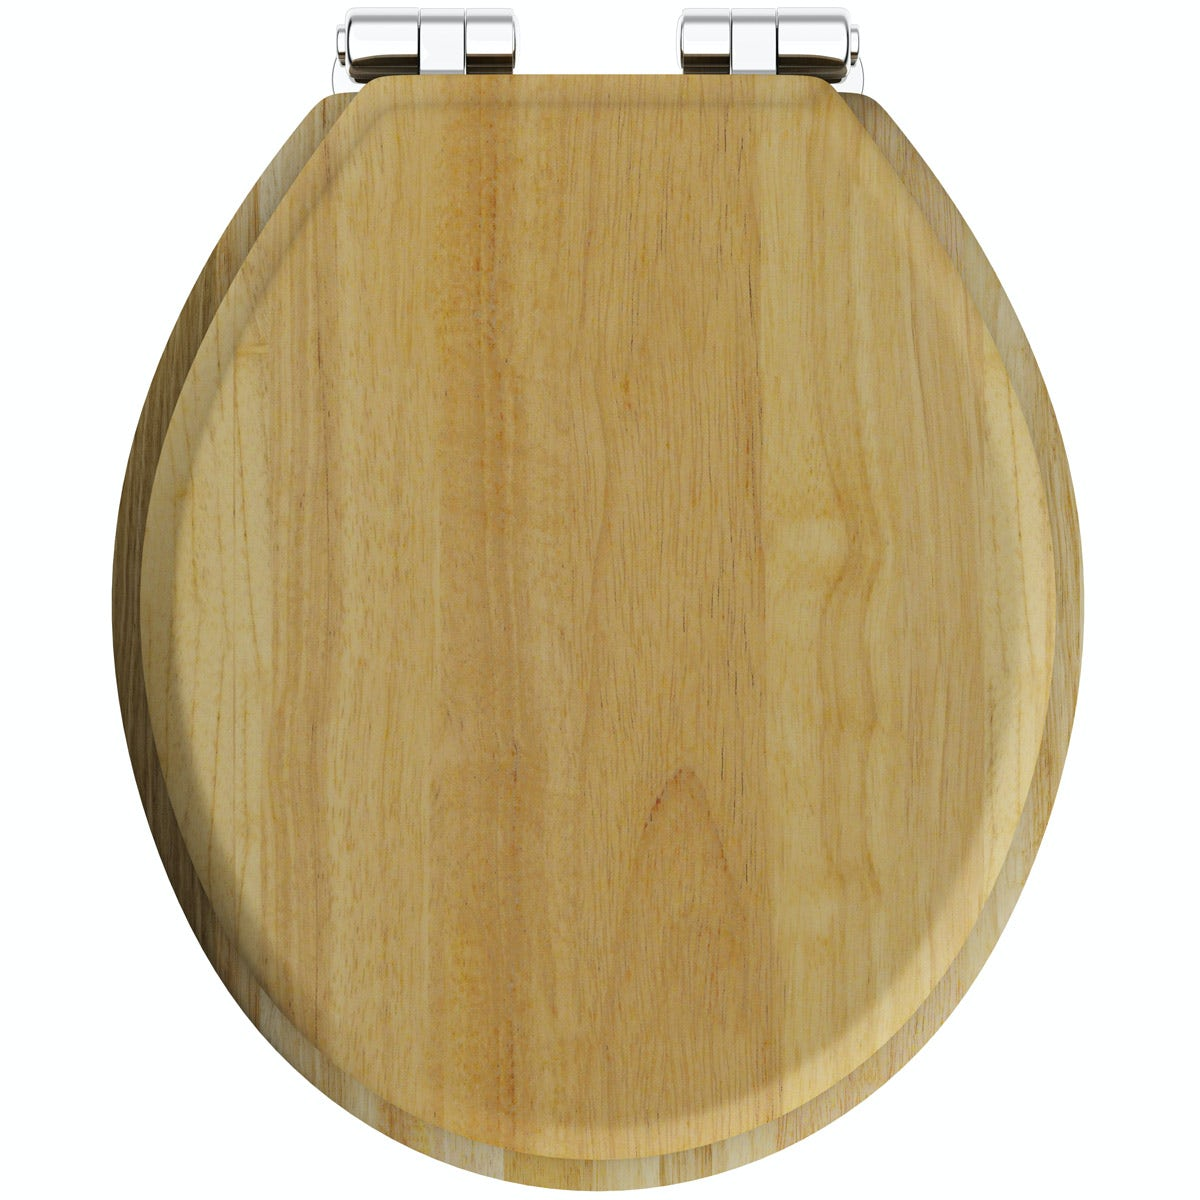 The Bath Co. traditional solid oak toilet seat with top fixing soft close quick release hinge